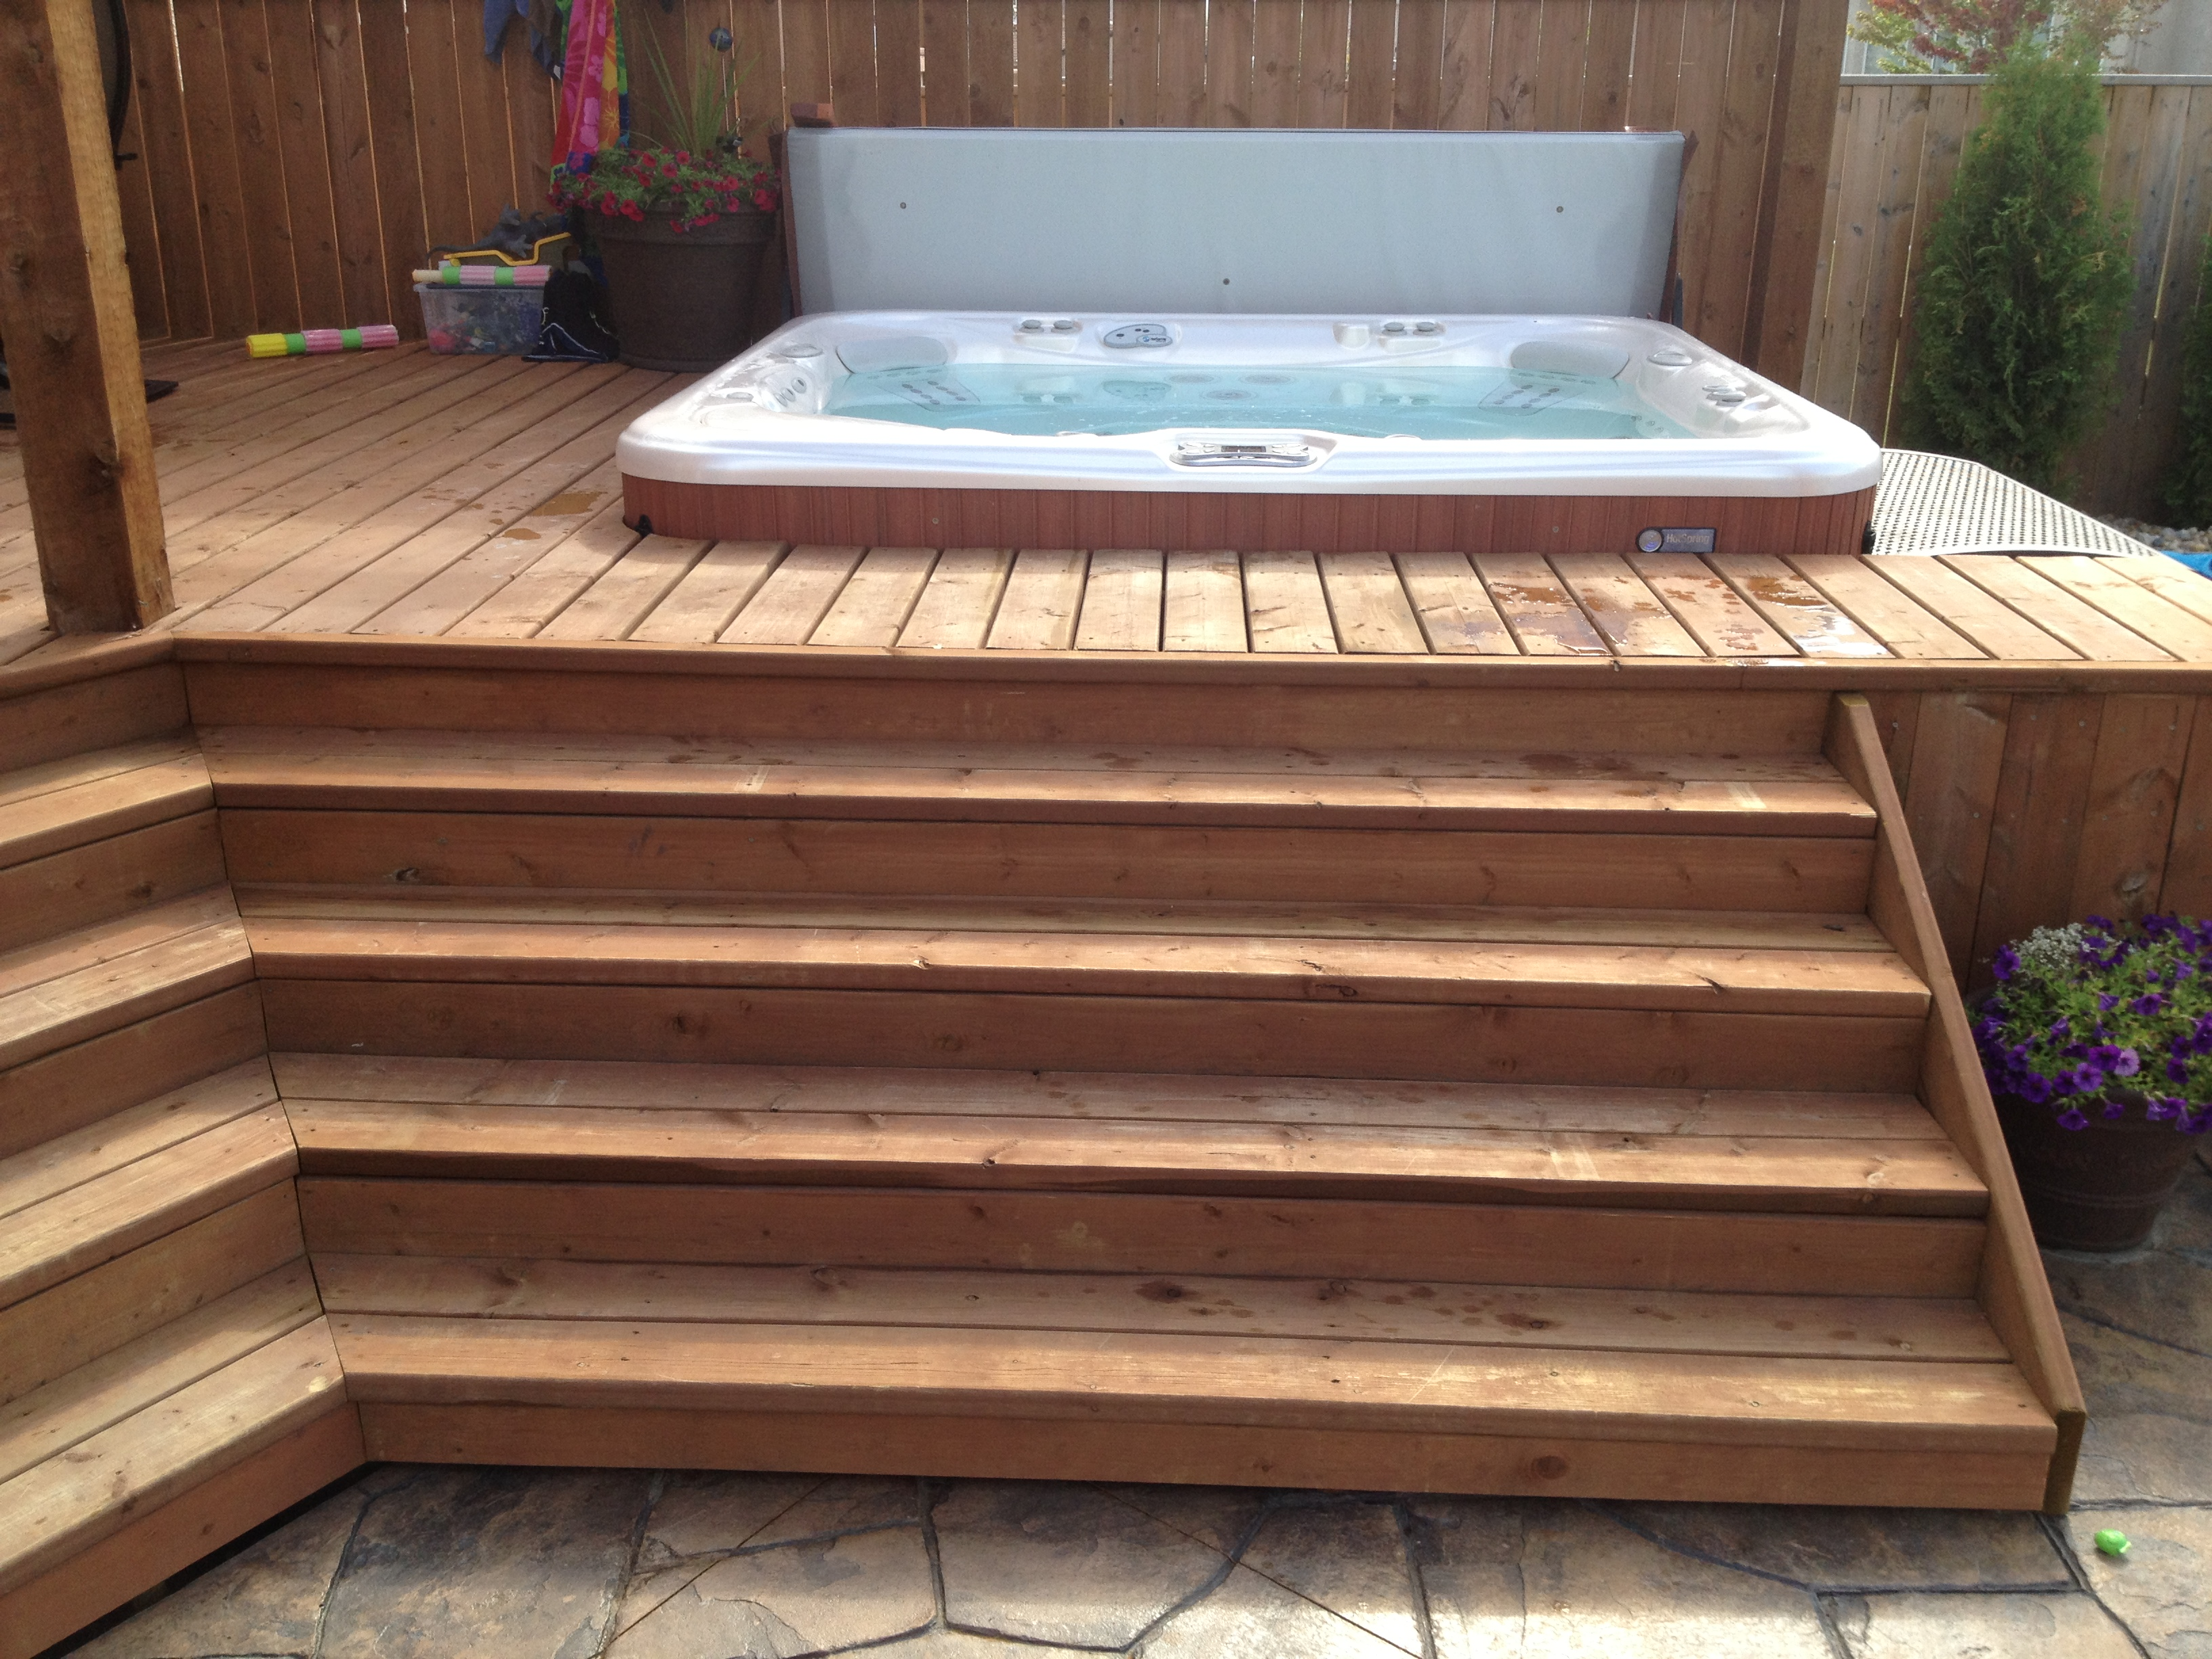 oudoor well in of and corner two plus image decking yard with tub tubs ideas wooden the hot level privacy back furniture build also bence buil decks patio bathroom a installation deck planters screen bench best designs outdoor as